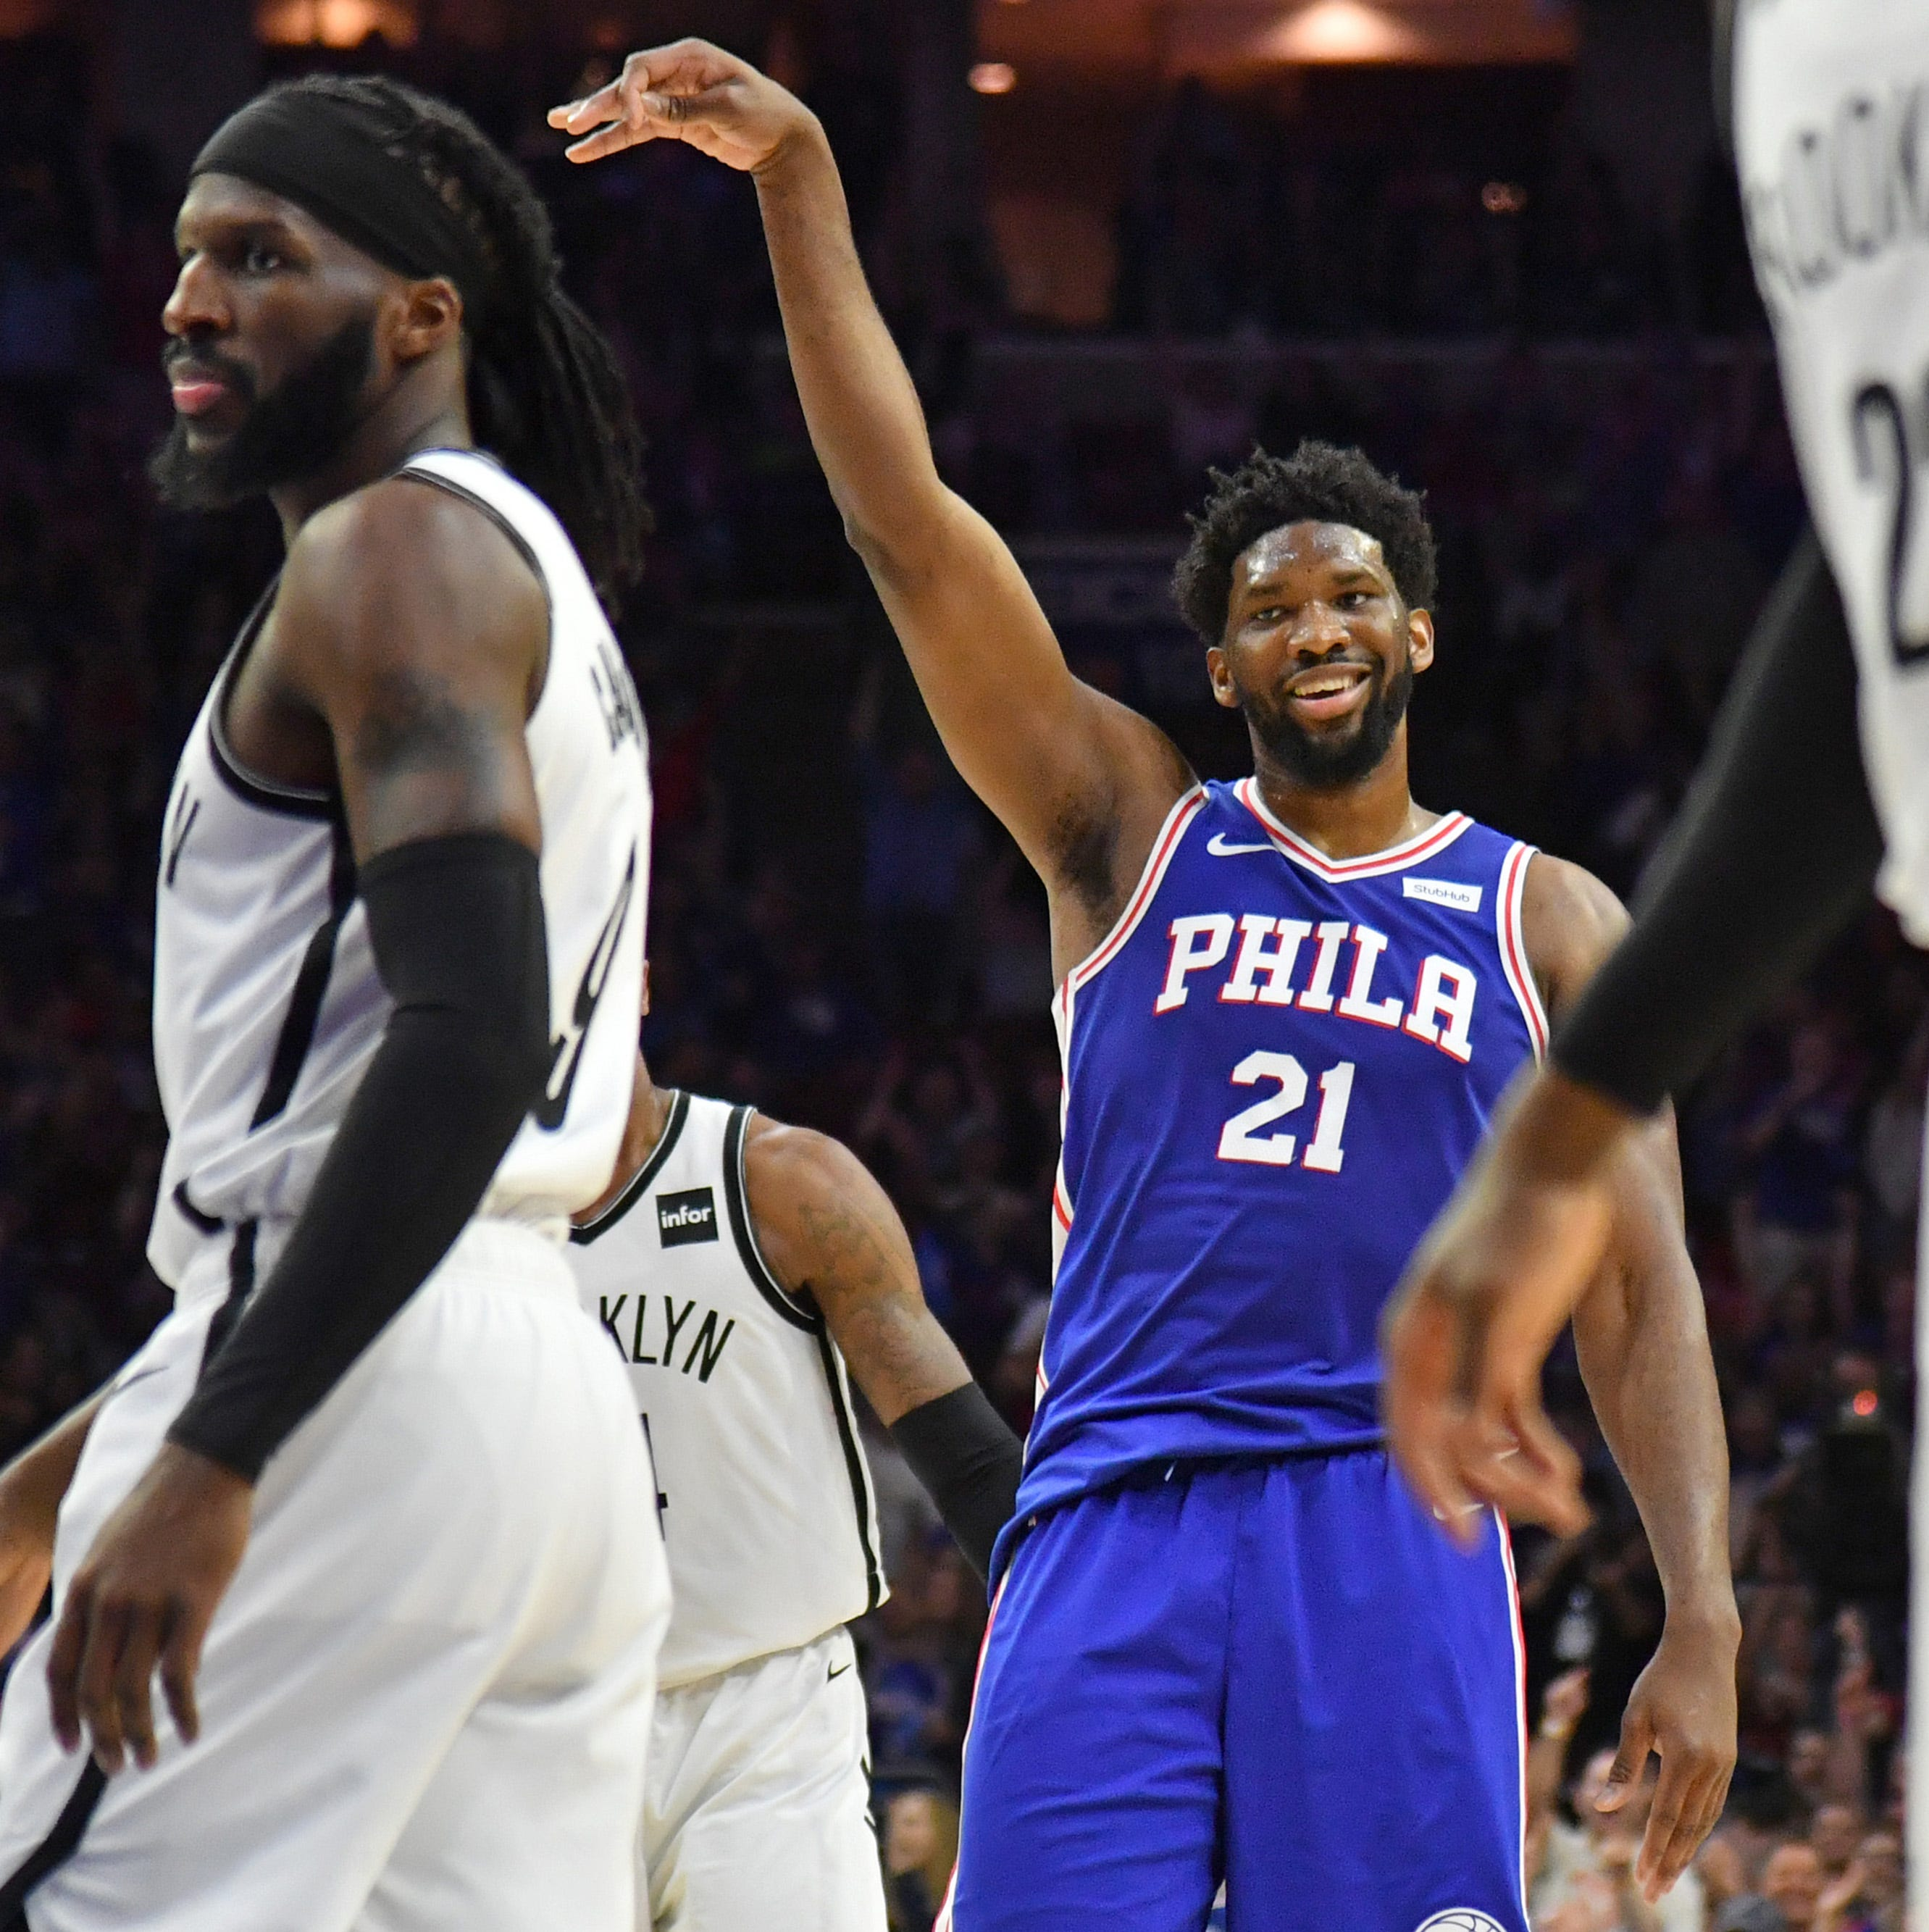 Joel Embiid, Sixers dominate Nets to close out NBA playoff series, advance to face Raptors